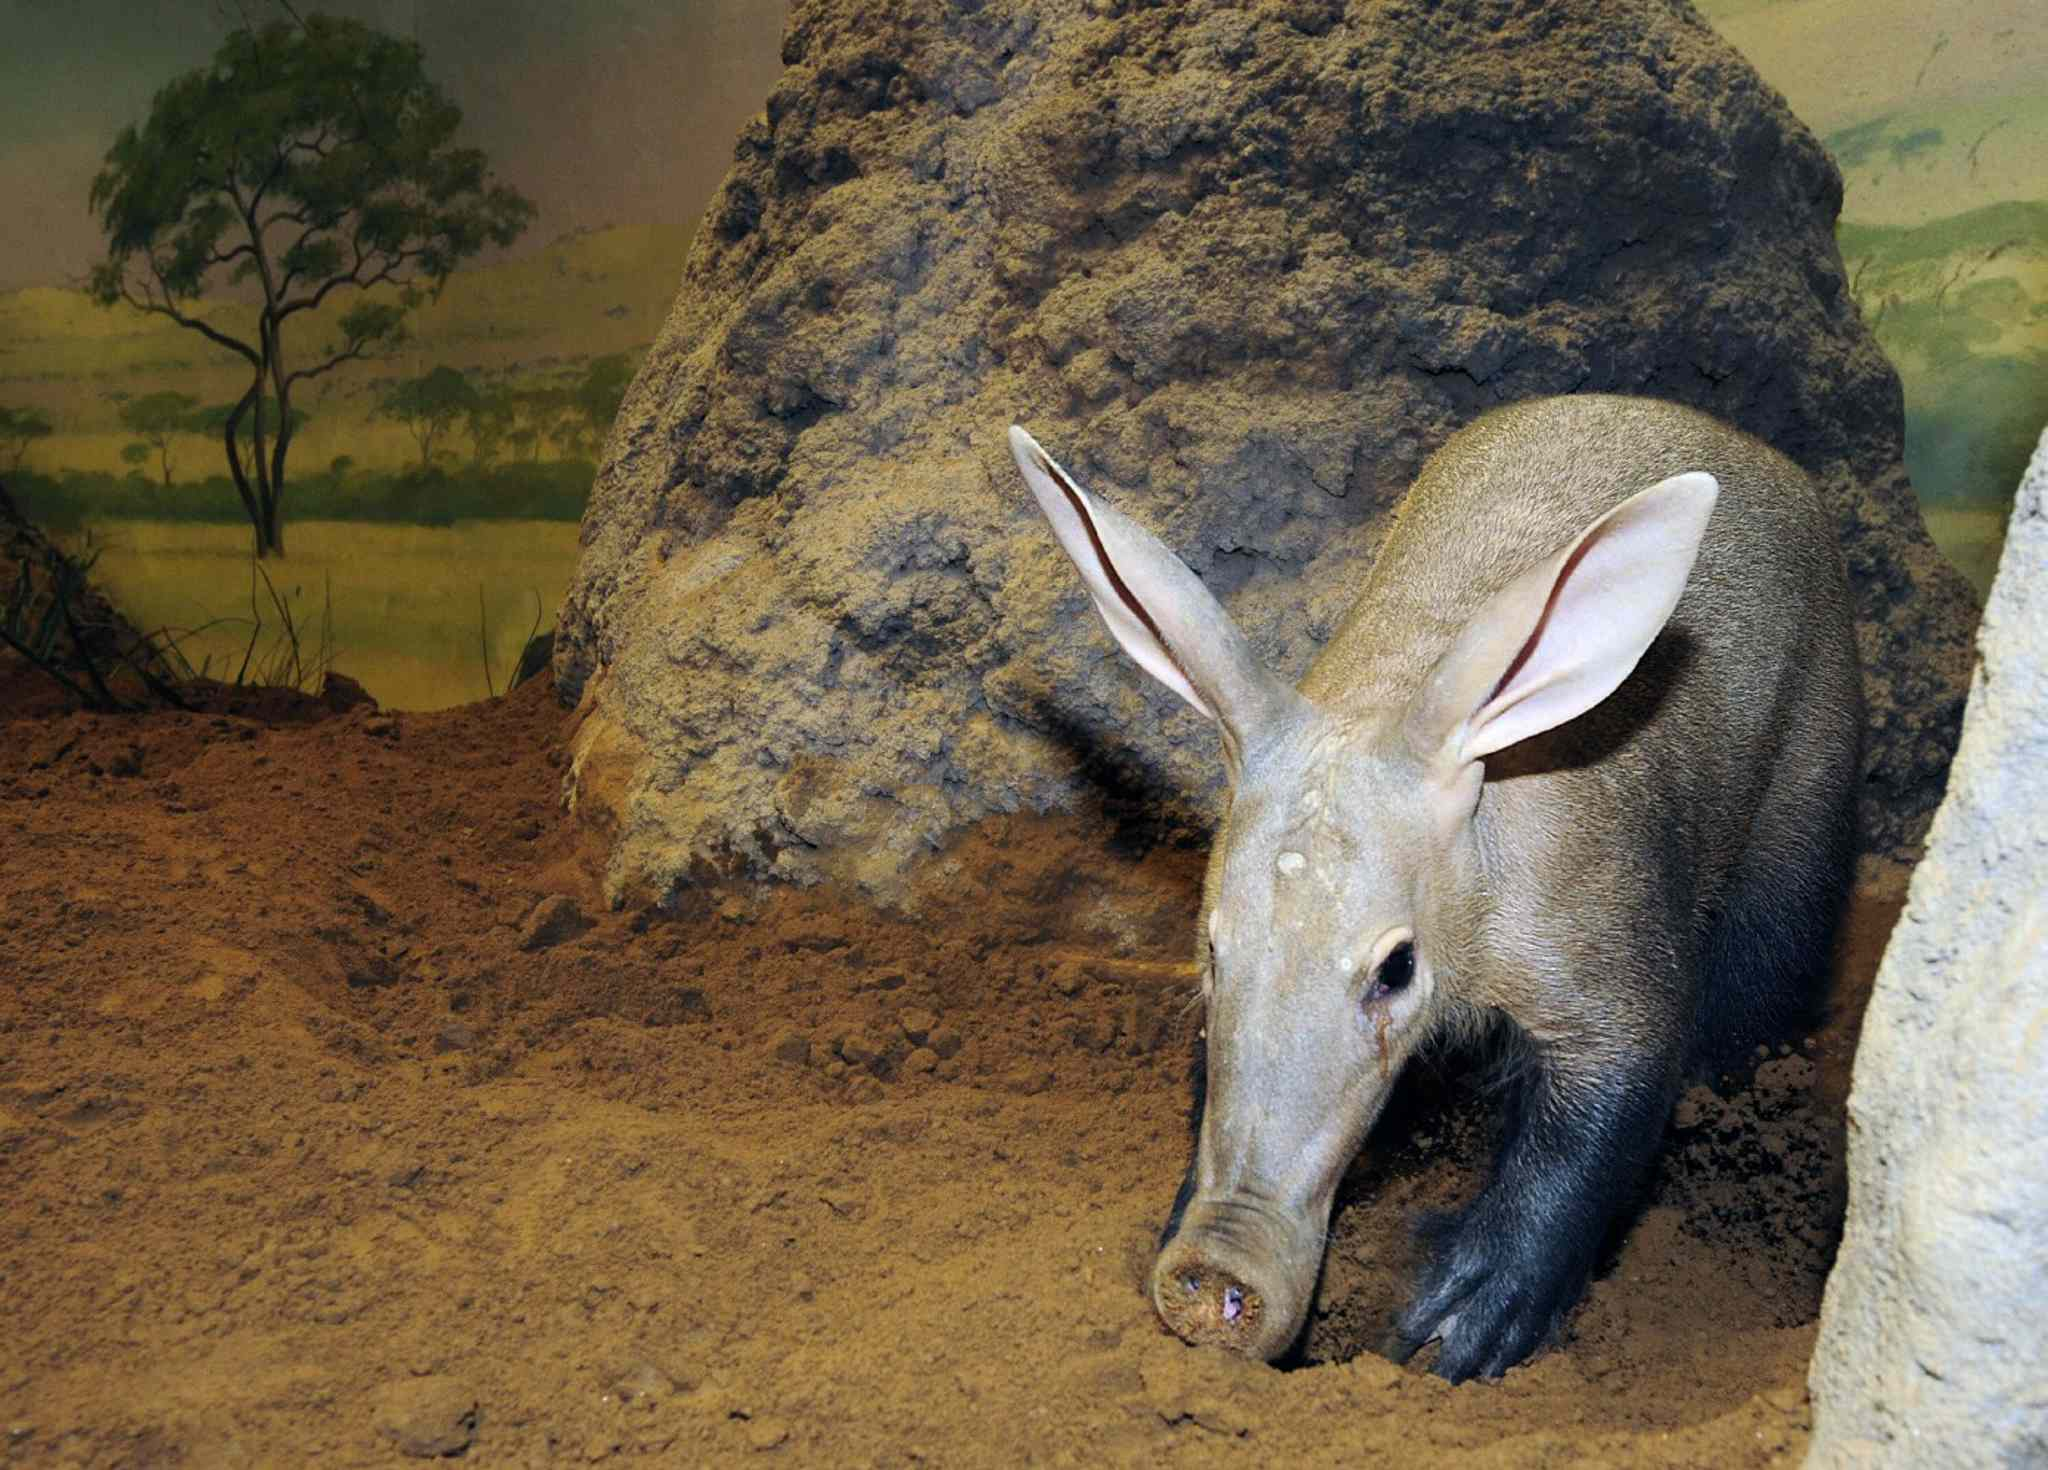 22. Insectivorous mammals, including, but not limited to, aardvark (pictured), tenrec, shrew species, mole species and hedgehog species, except the African pygmy hedgehog.